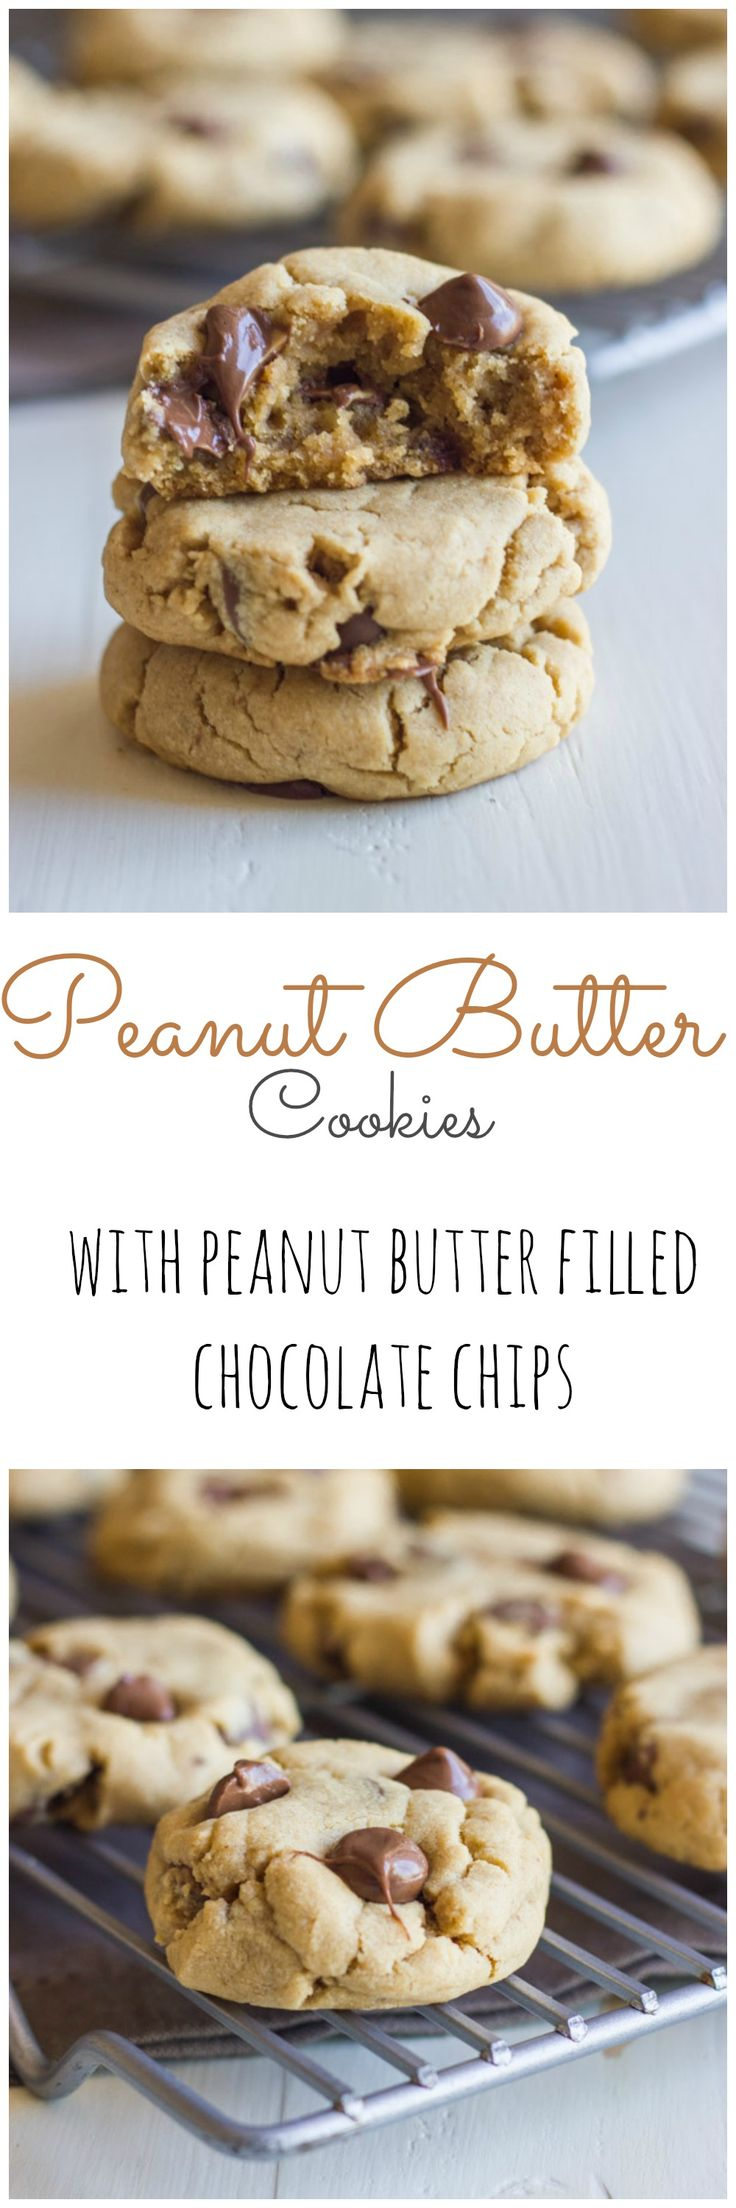 The ULTIMATE peanut butter lover's cookie.  Made with coconut oil!